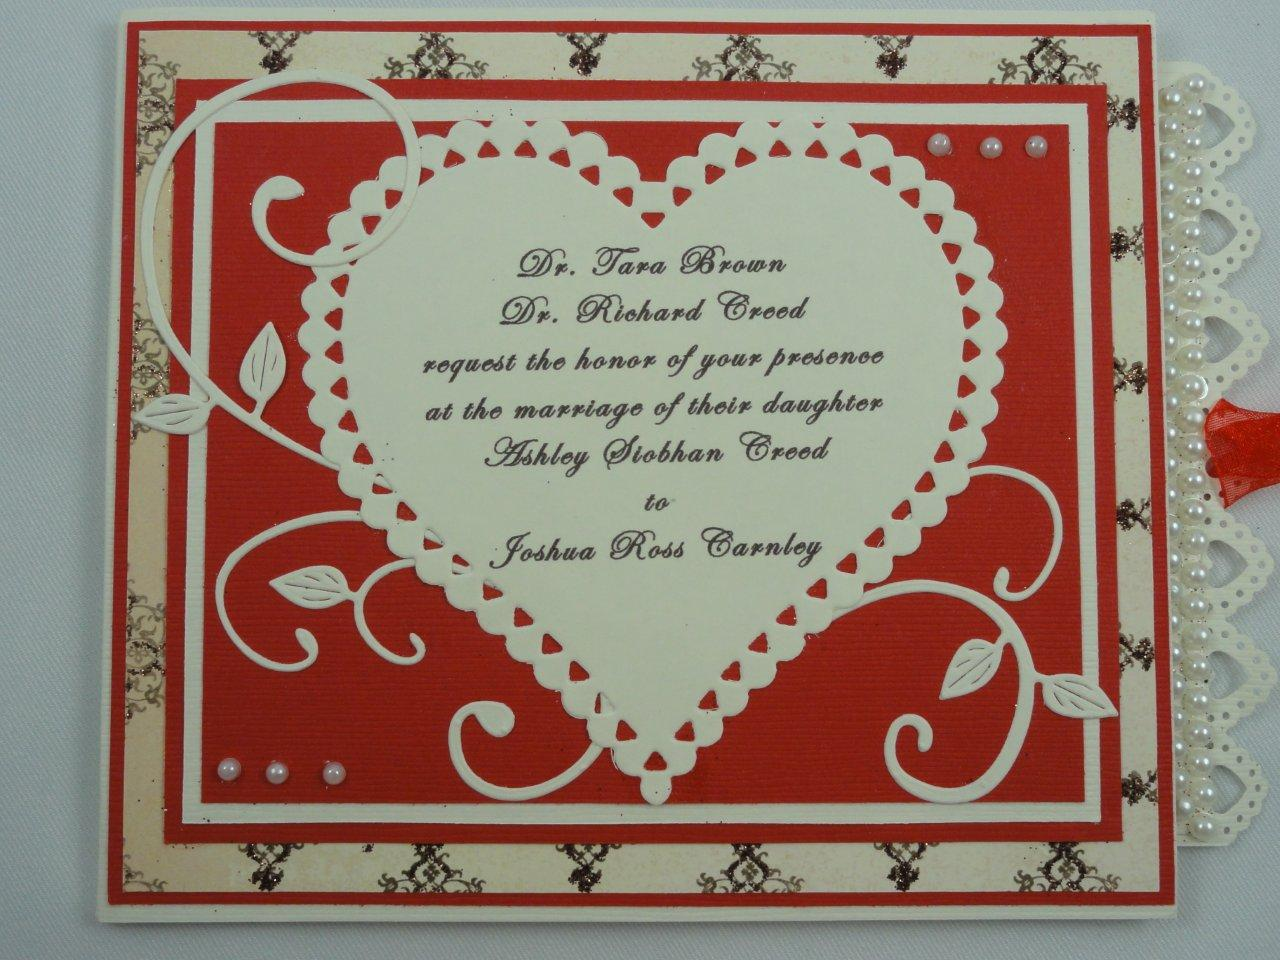 Ashley\'s wedding invitations, thank you cards, and save-the-date ...